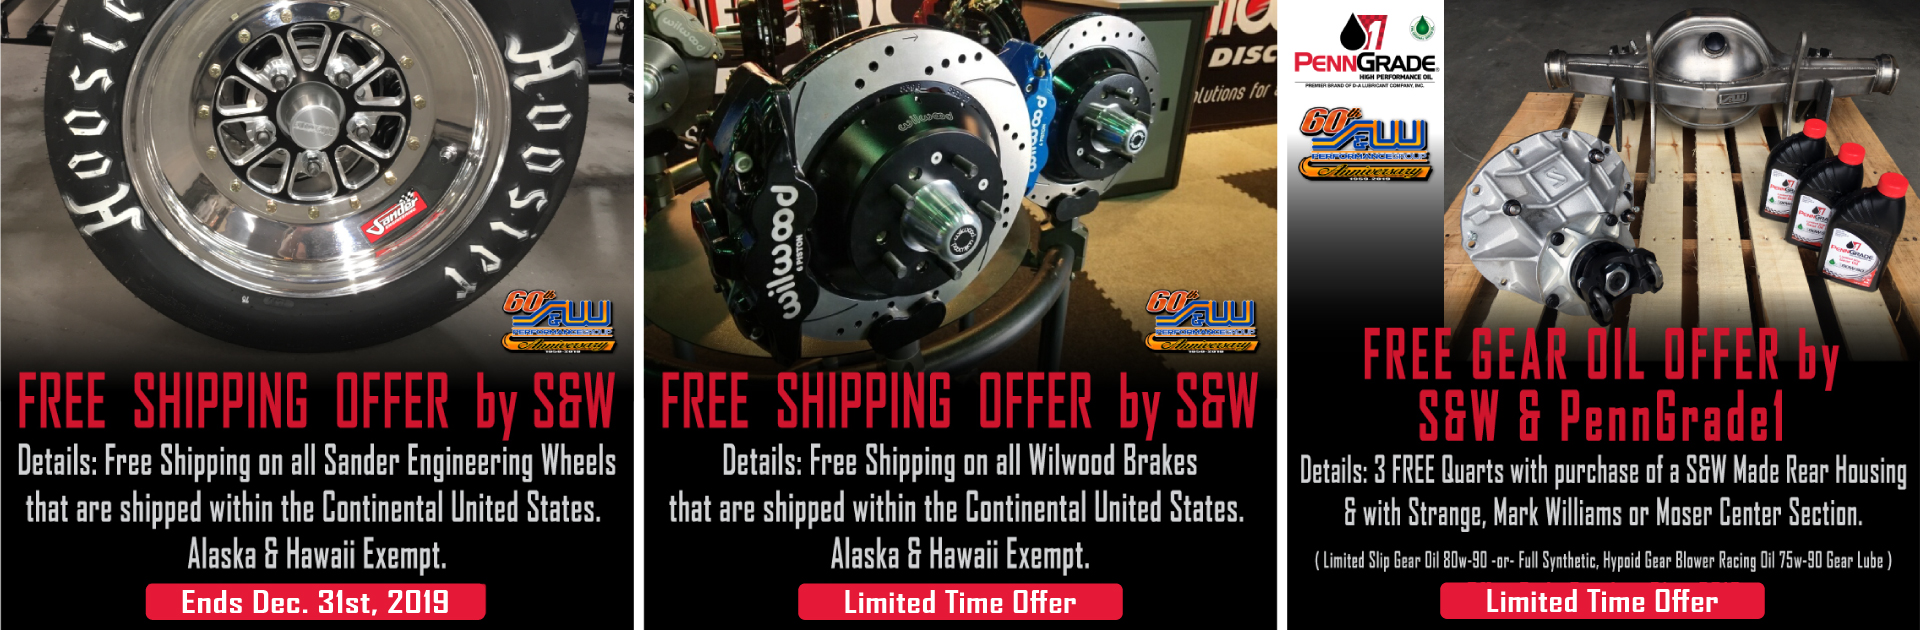 Offers by S&W